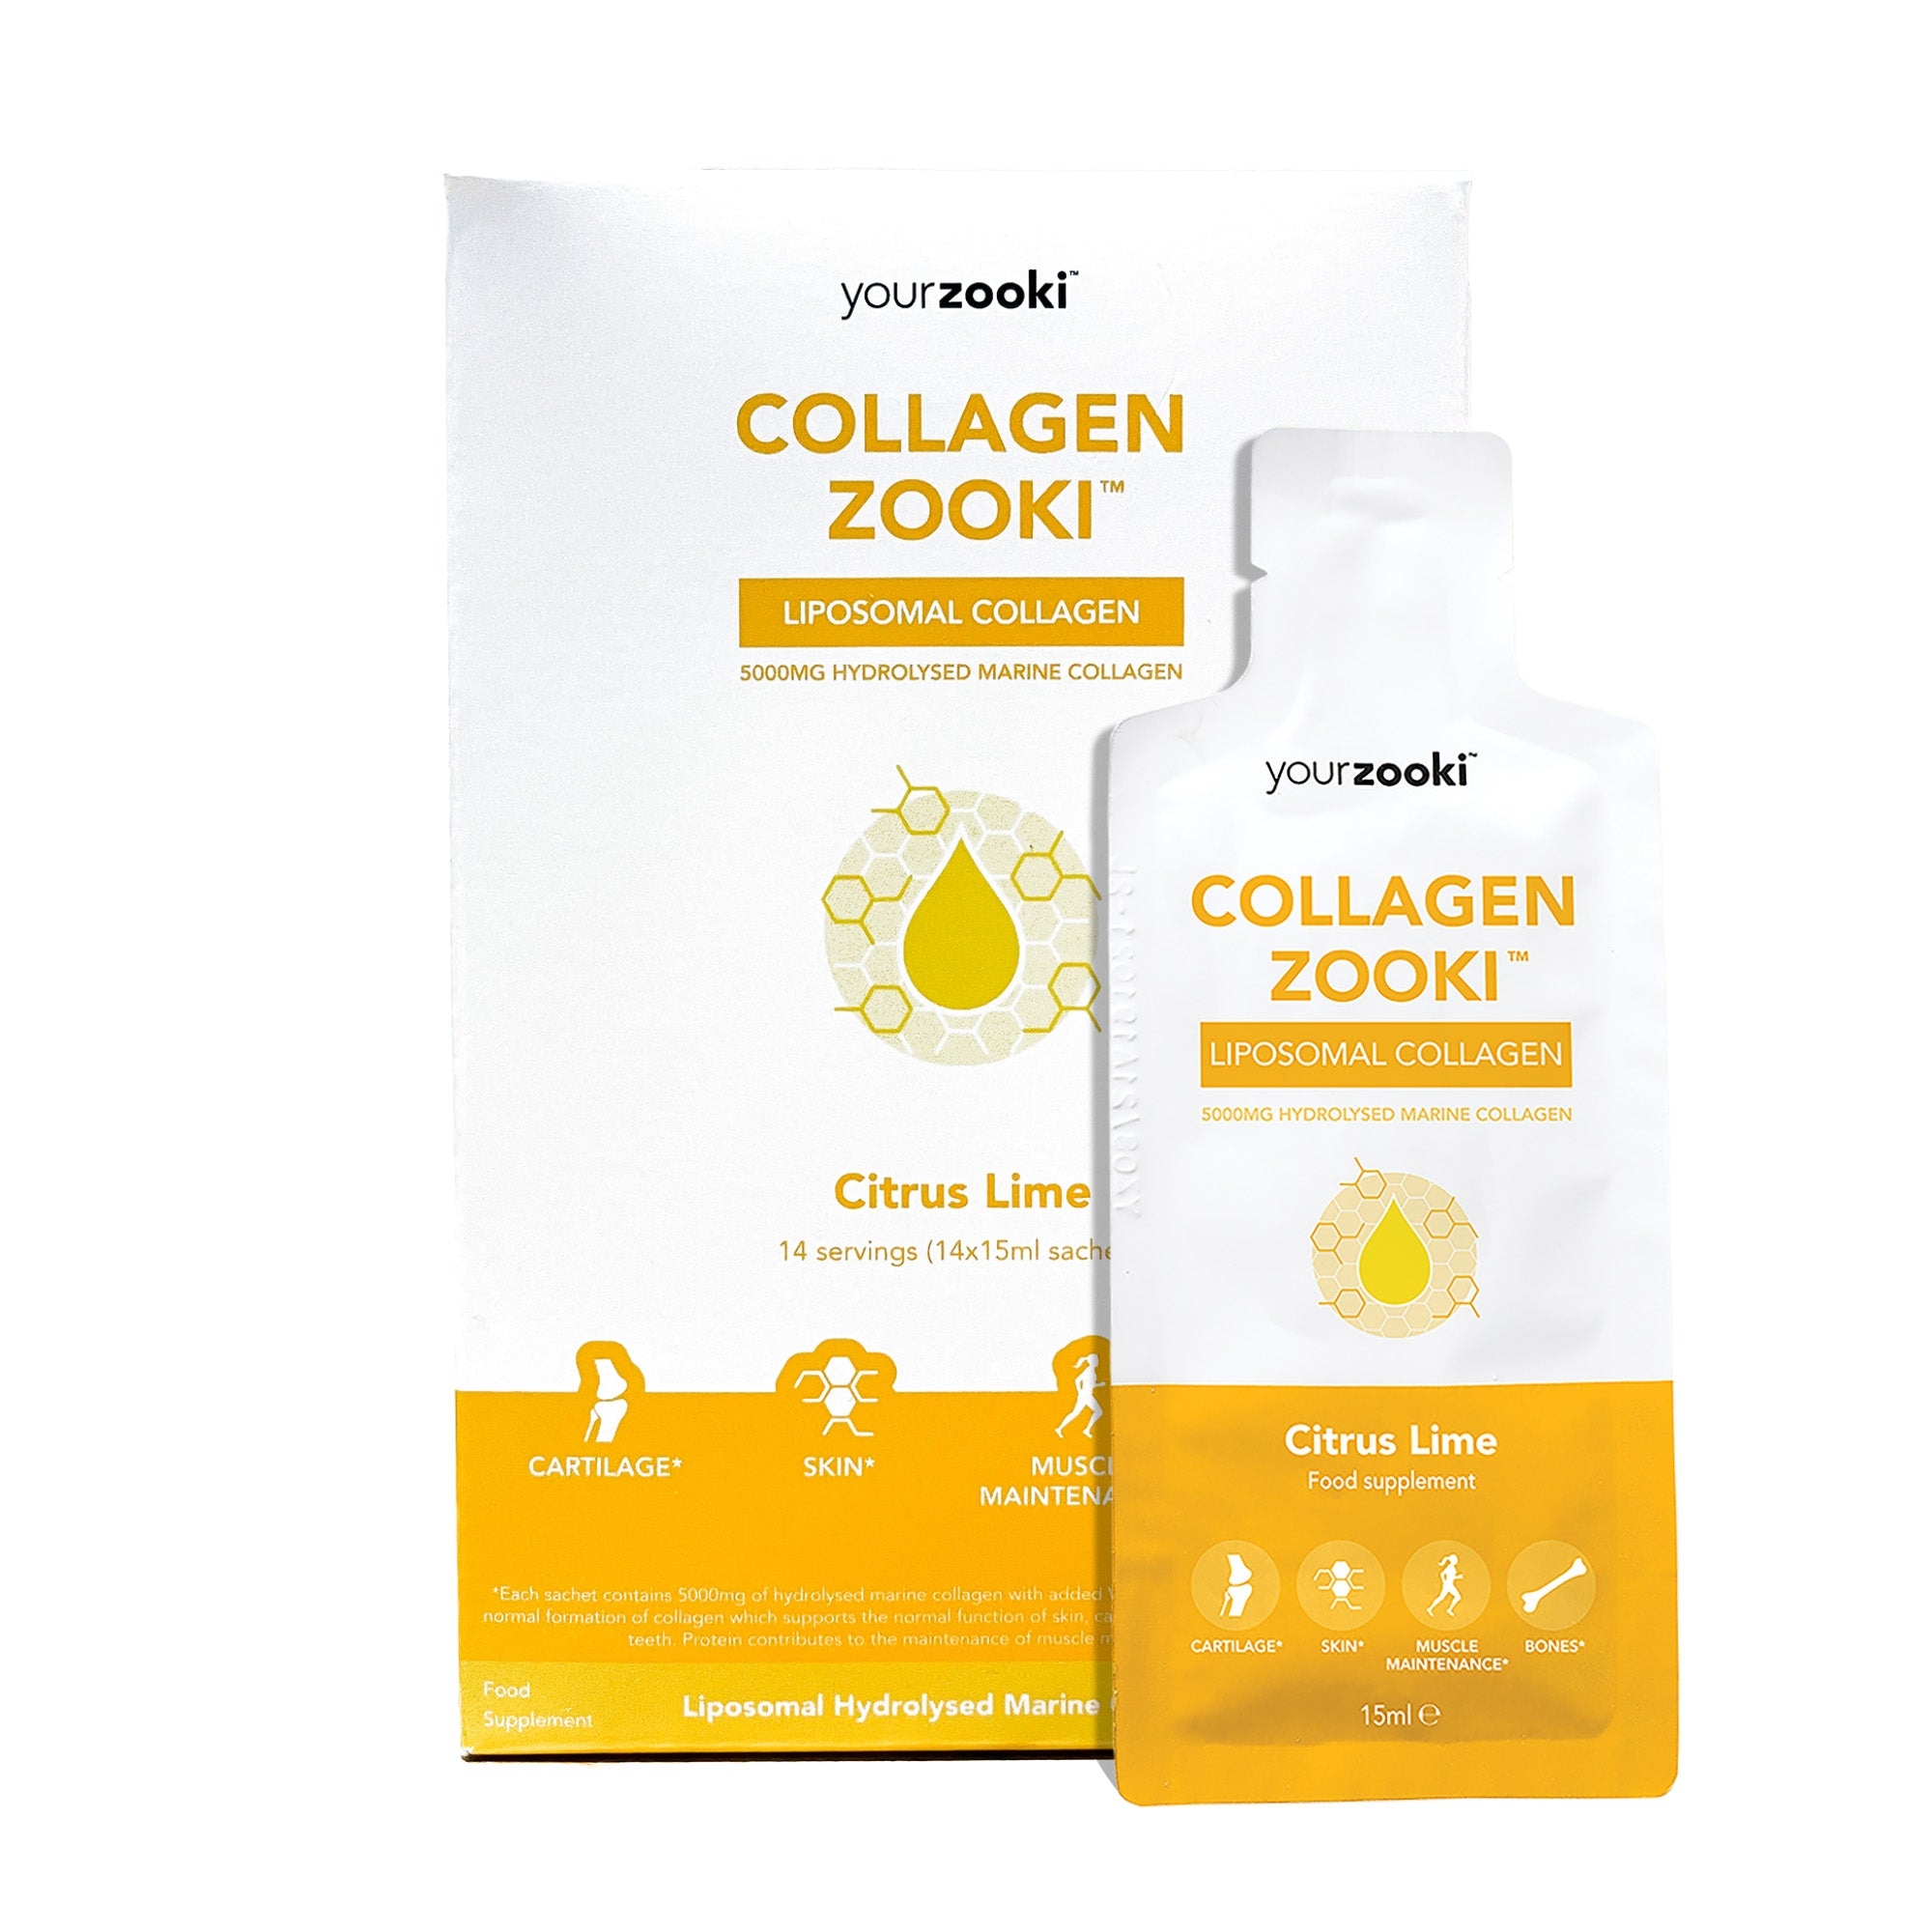 Collagen Zooki